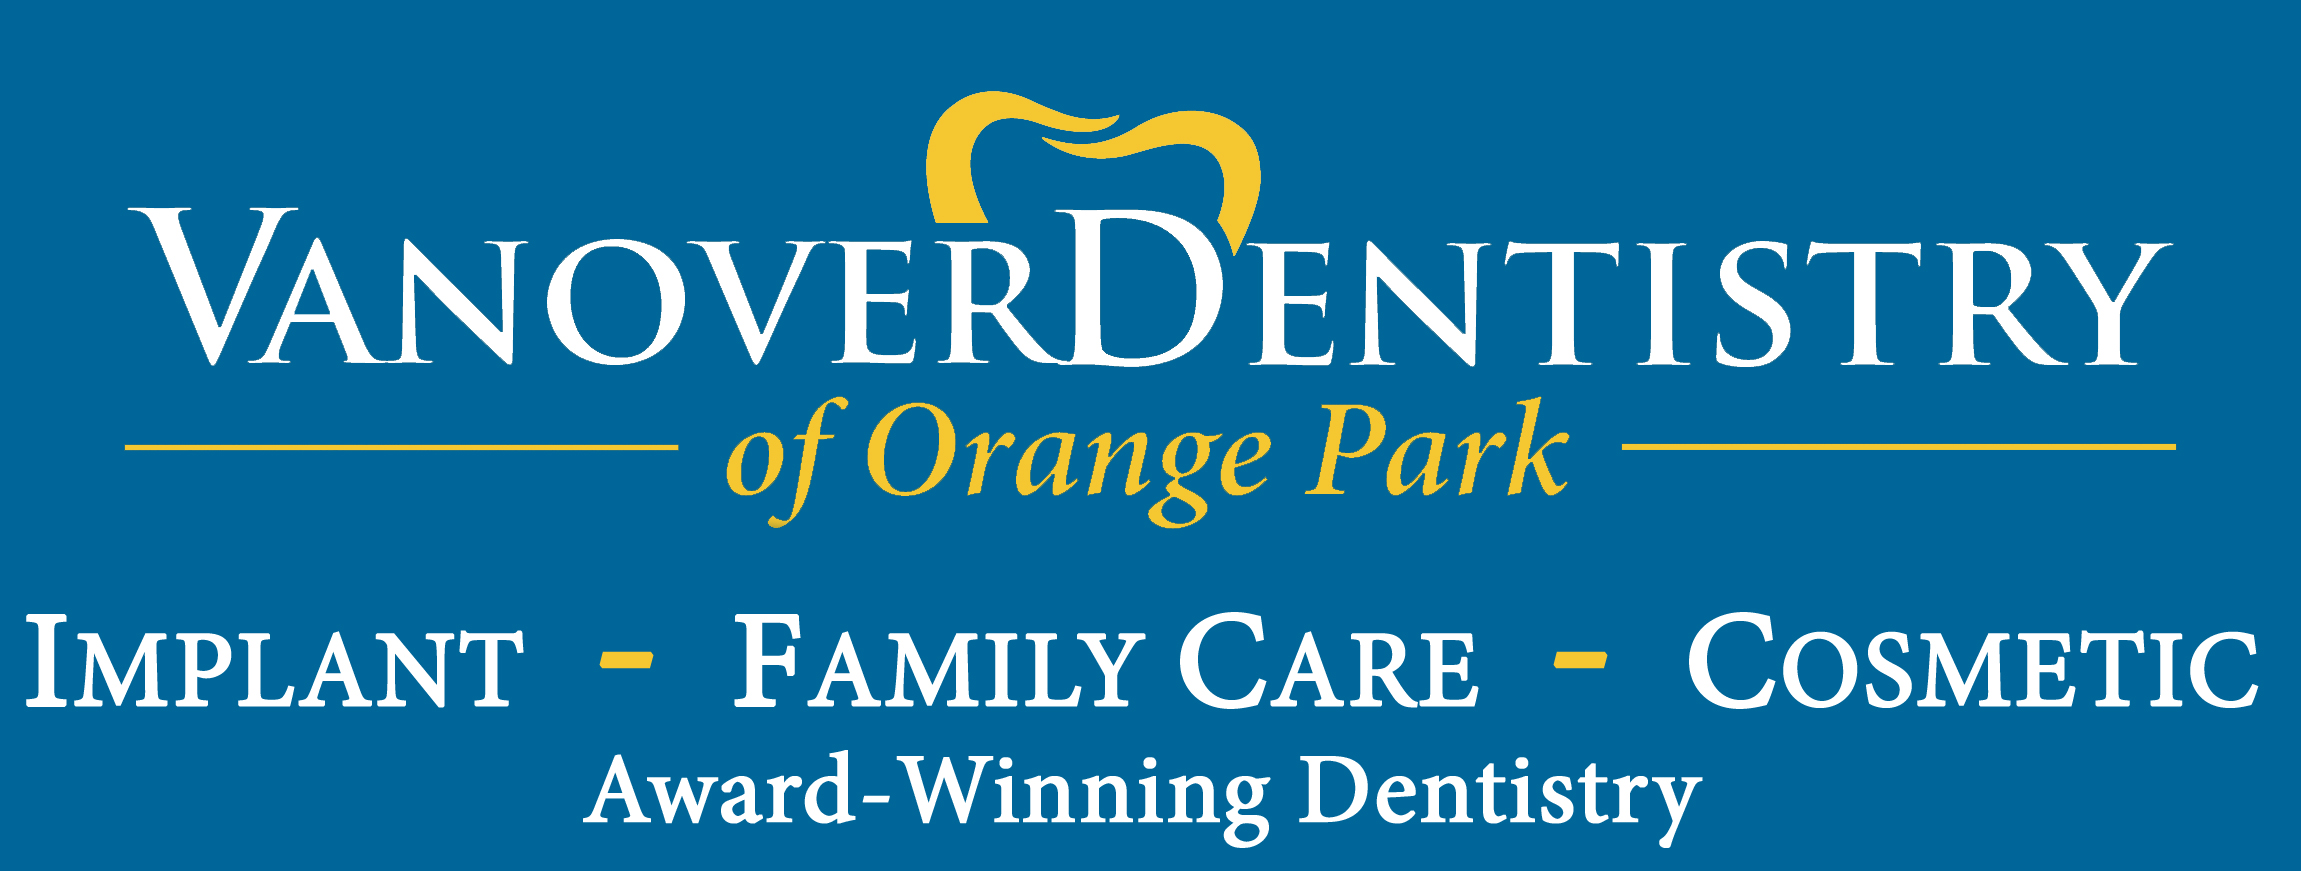 Vanover Dentistry of Orange Park reviews | Dental Implants at 784 Blanding Blvd #110 - Orange Park FL